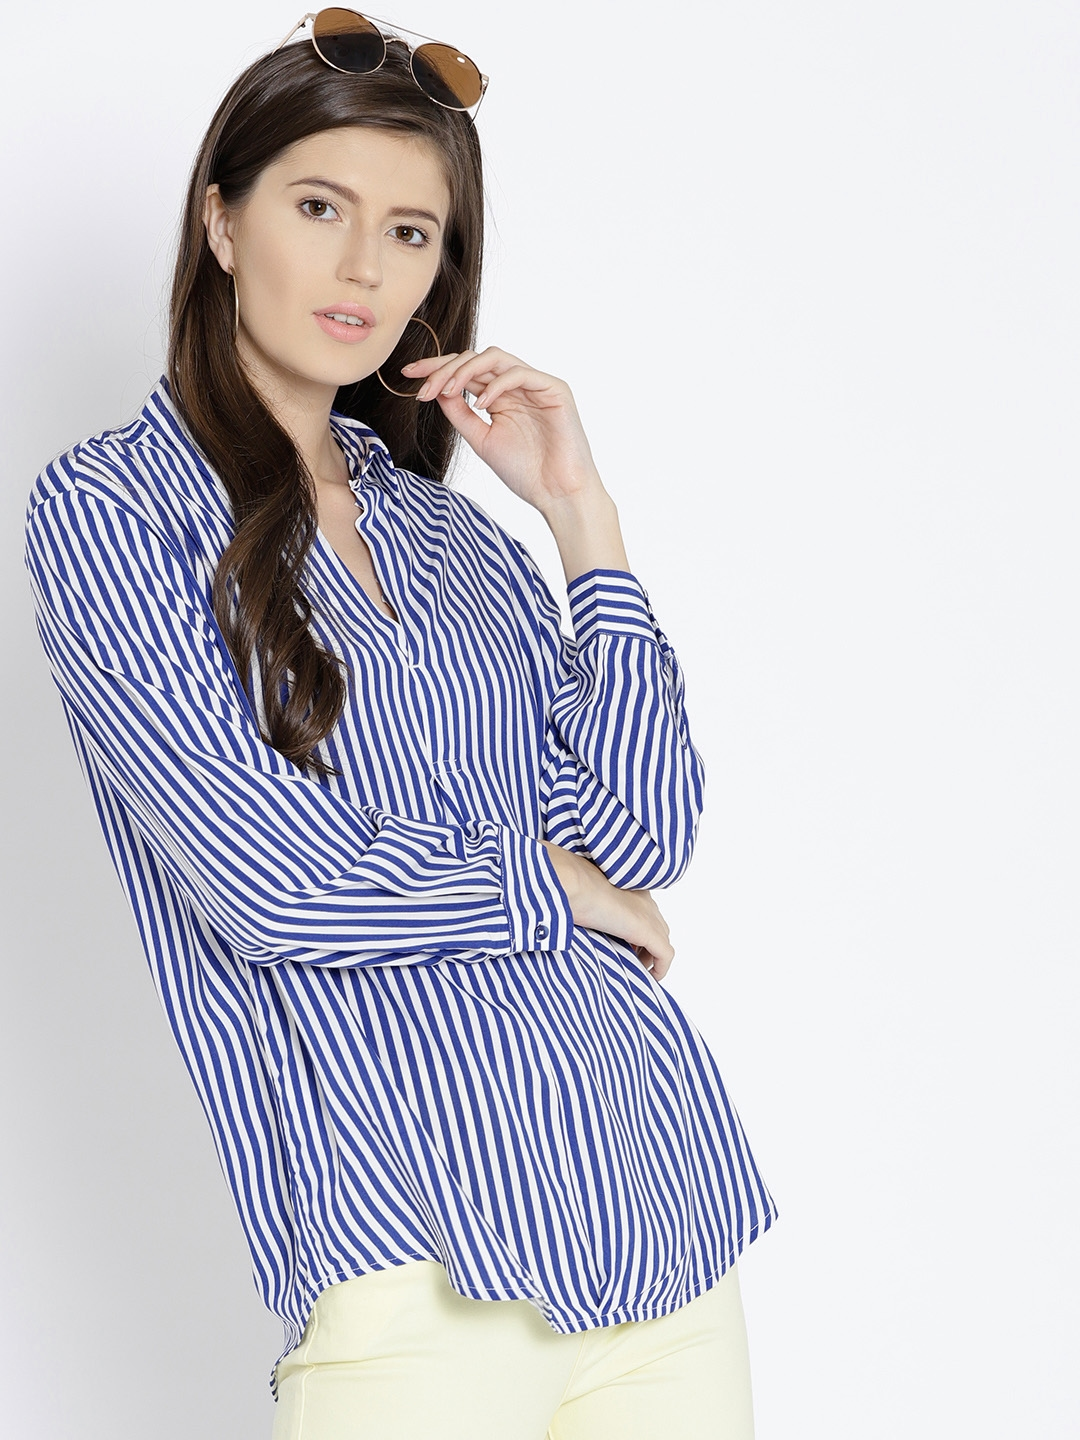 a352a95f9a Buy MANGO Women Navy Blue & White Striped Shirt Style Top - Tops for ...